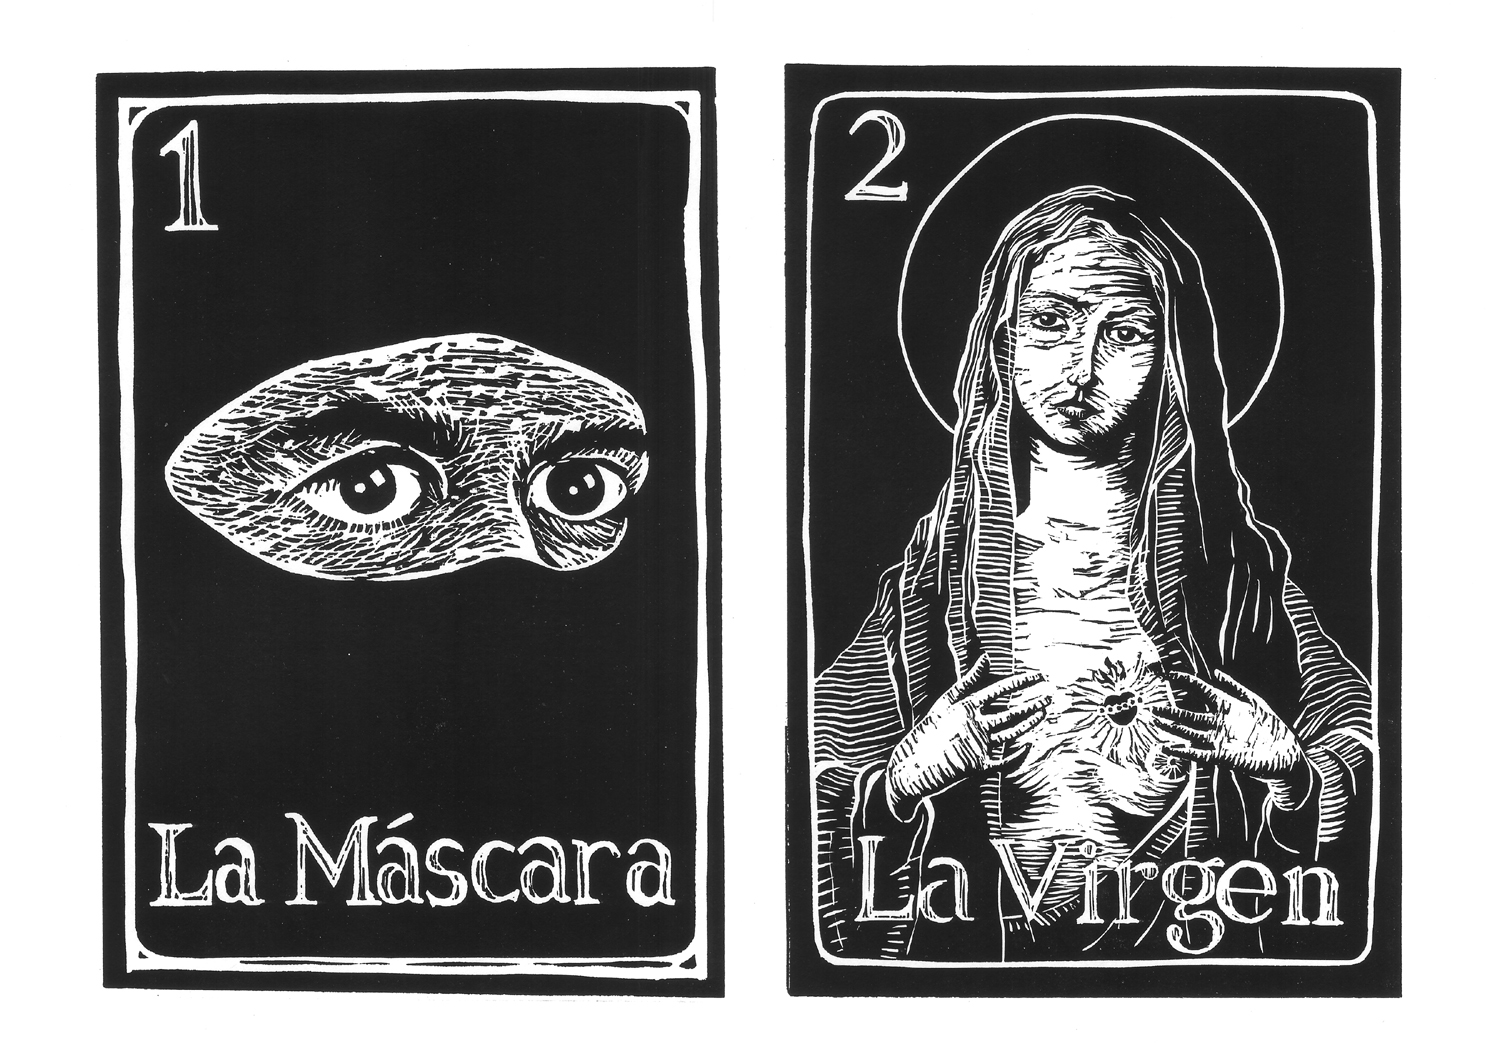 lino_2001_mascara_virgen